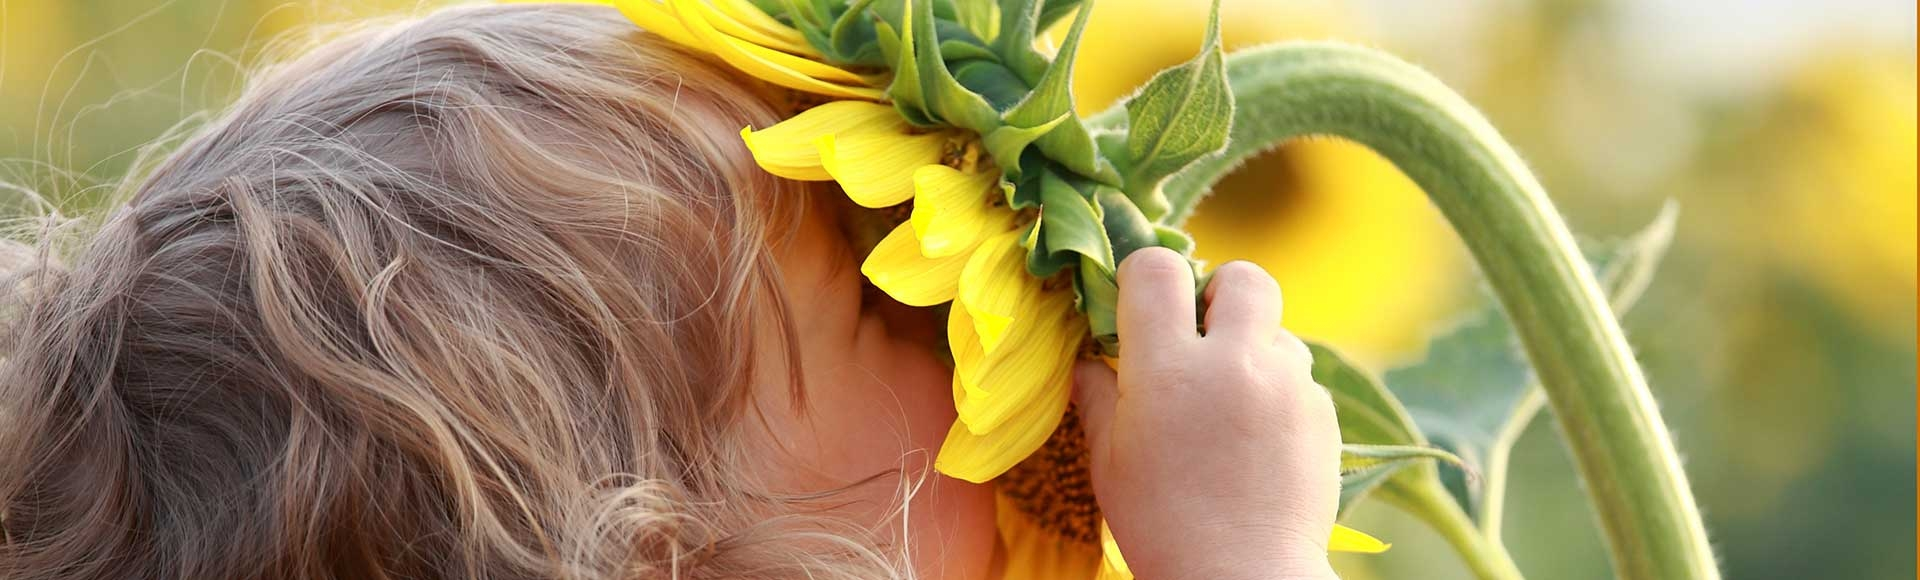 child smelling sunflower outside